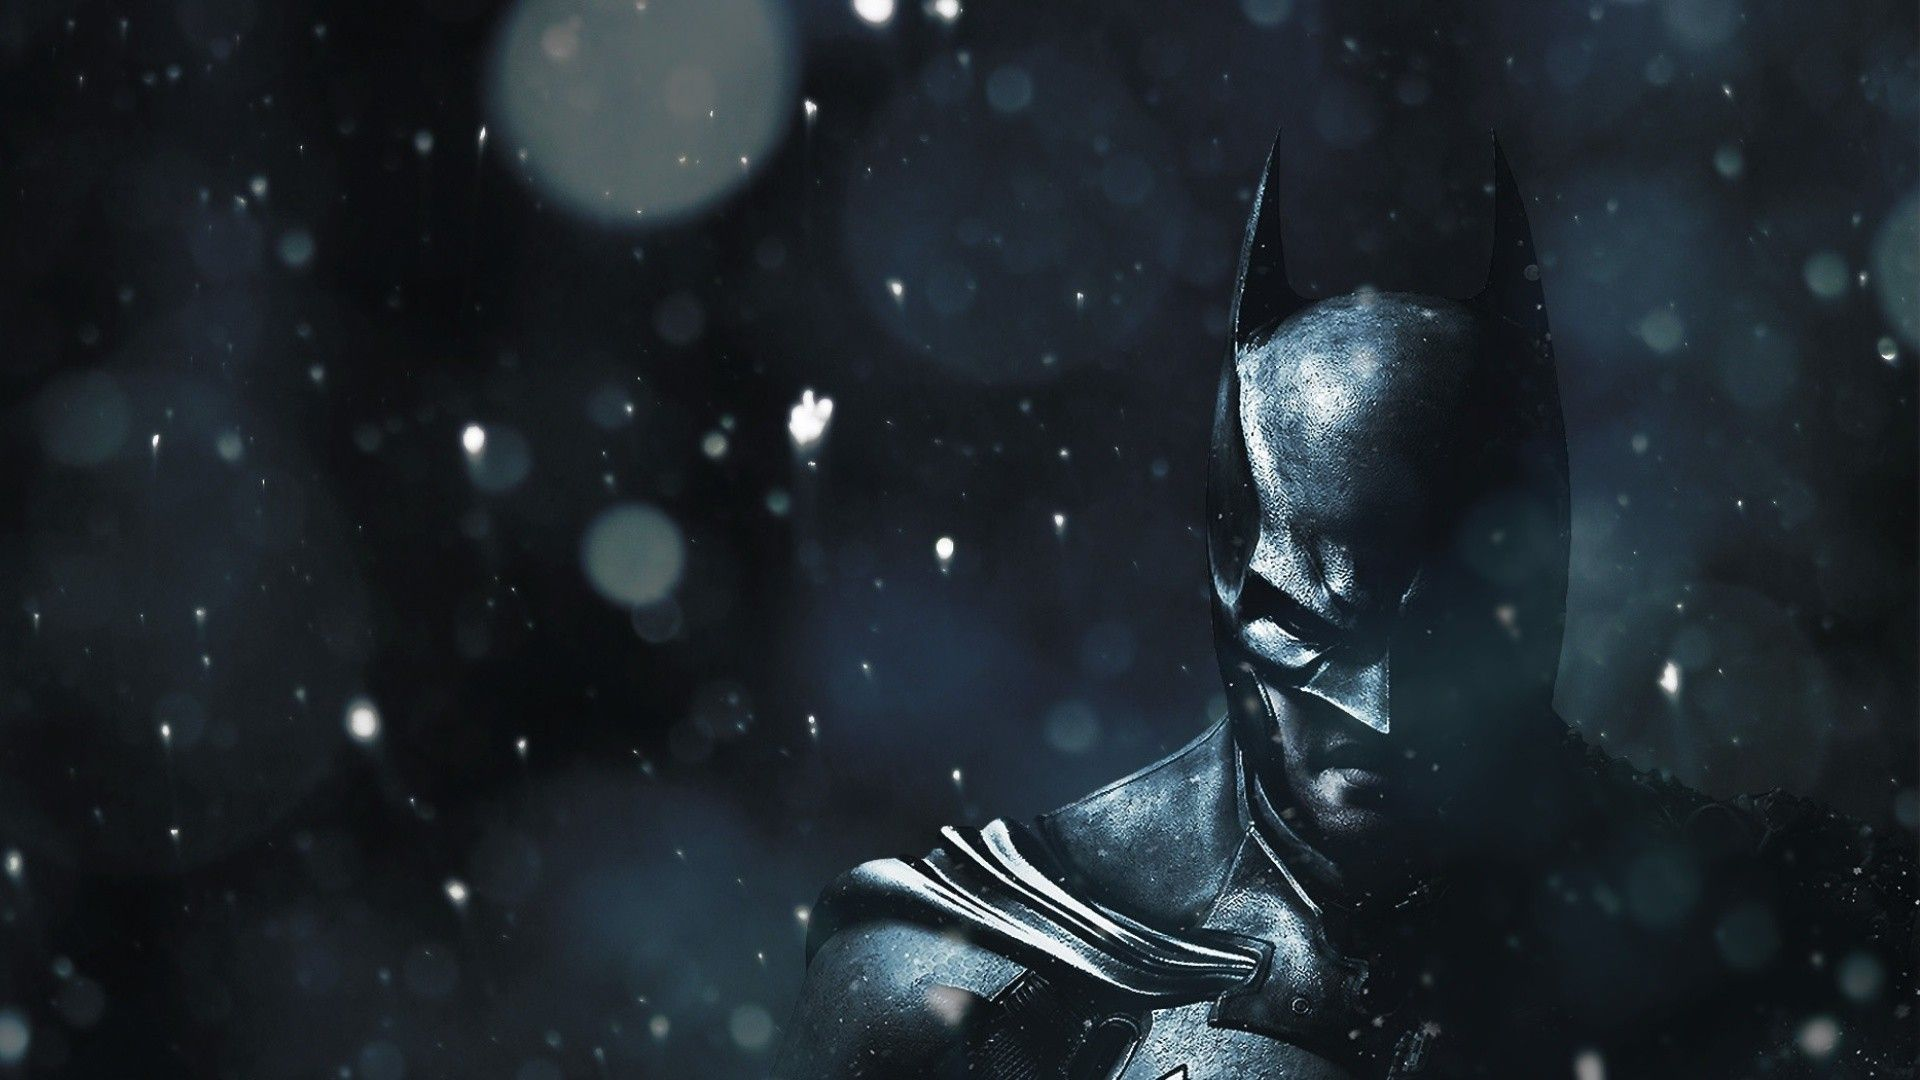 Batman Arkham City HD Wallpaper FullHDWpp   Full HD Wallpapers 1920x1080